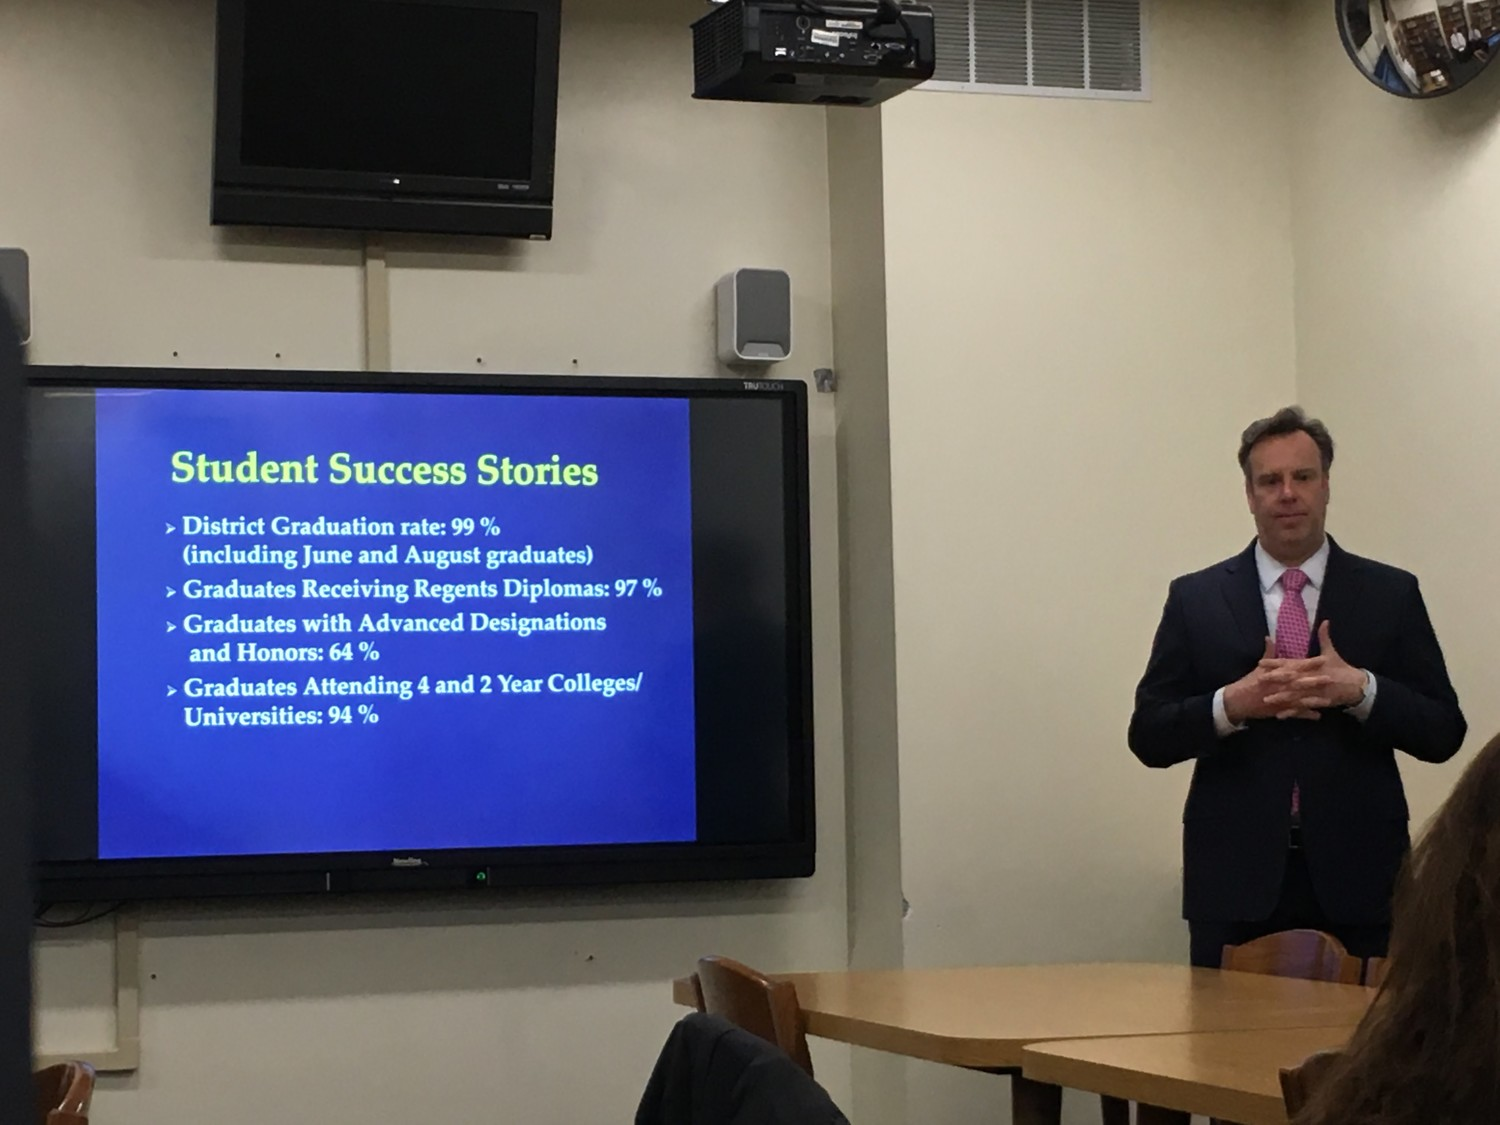 Superintendent Bill Heidenreich presented the district's proposed 2018-19 budget at a Central High School/Memorial Junior High School Parent Teacher Association meeting on April 11.